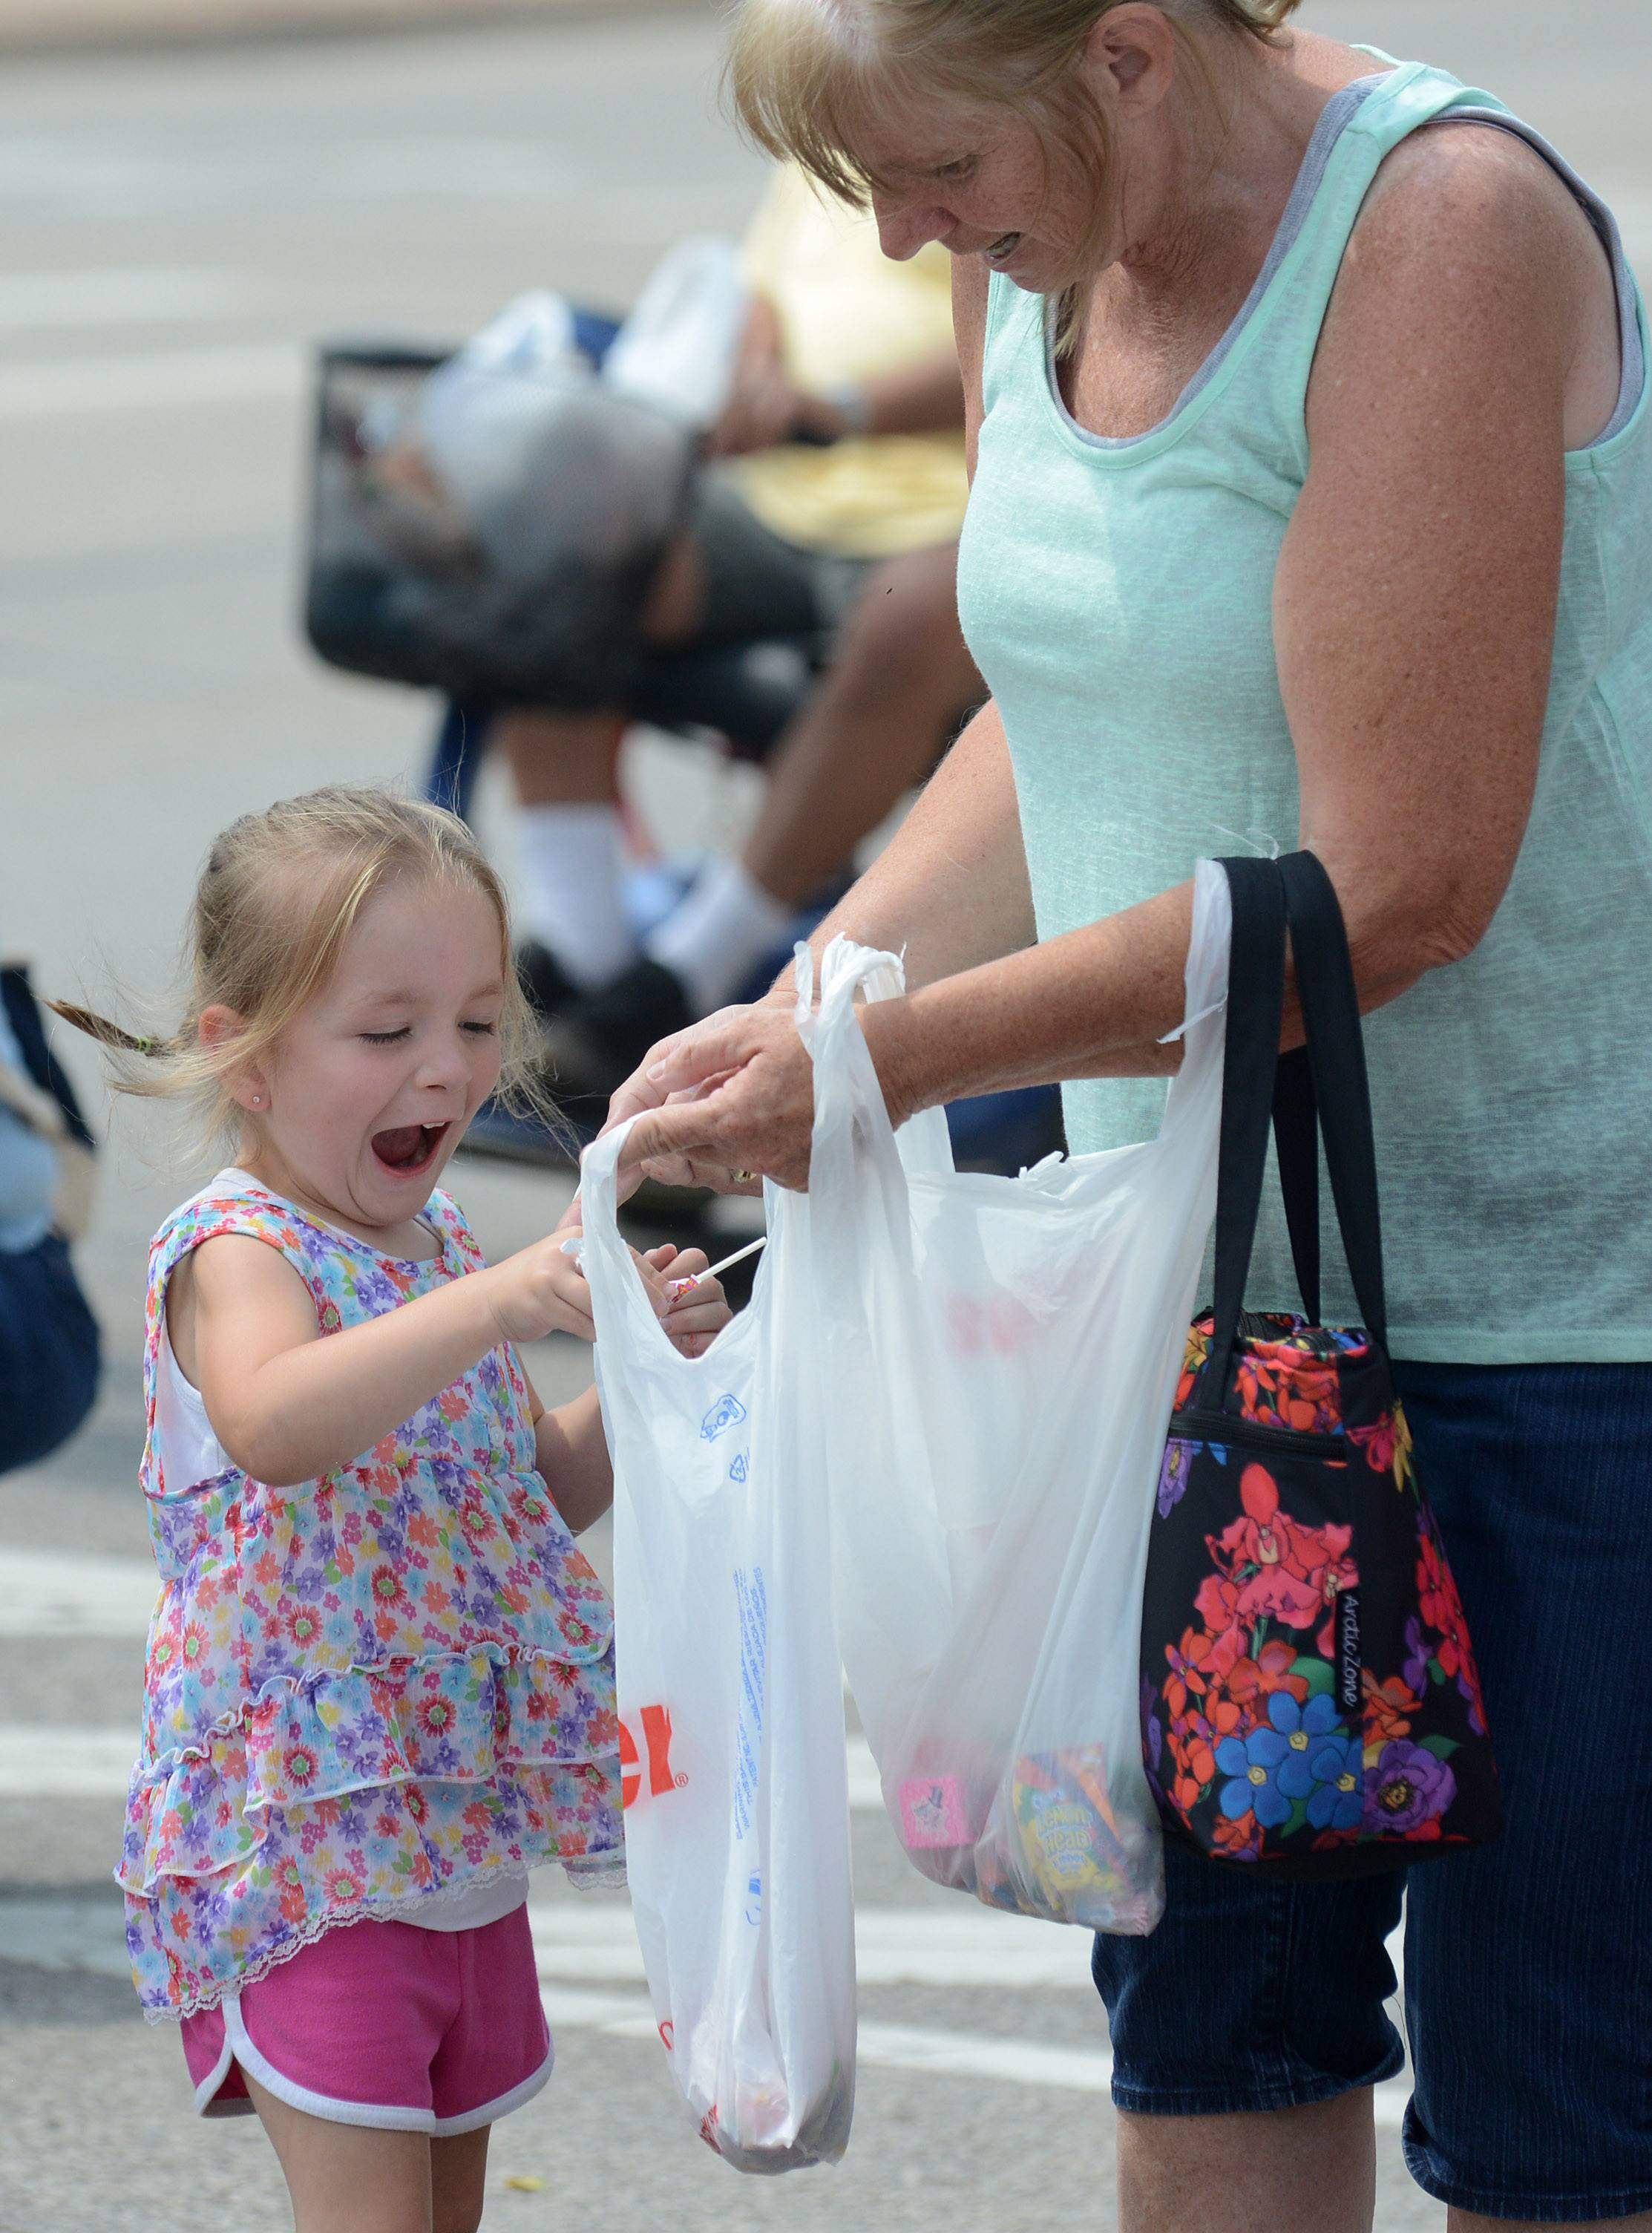 Karli Helmer, 4, of Janesville, Wisconsin, fills her bag with candy with help from her grandmother, Judy Atkinson of Belvidere, at the Founders' Days parade in Algonquin on Saturday. Atkinson, a former Carpentersville resident, brought her grandchildren to the parade.